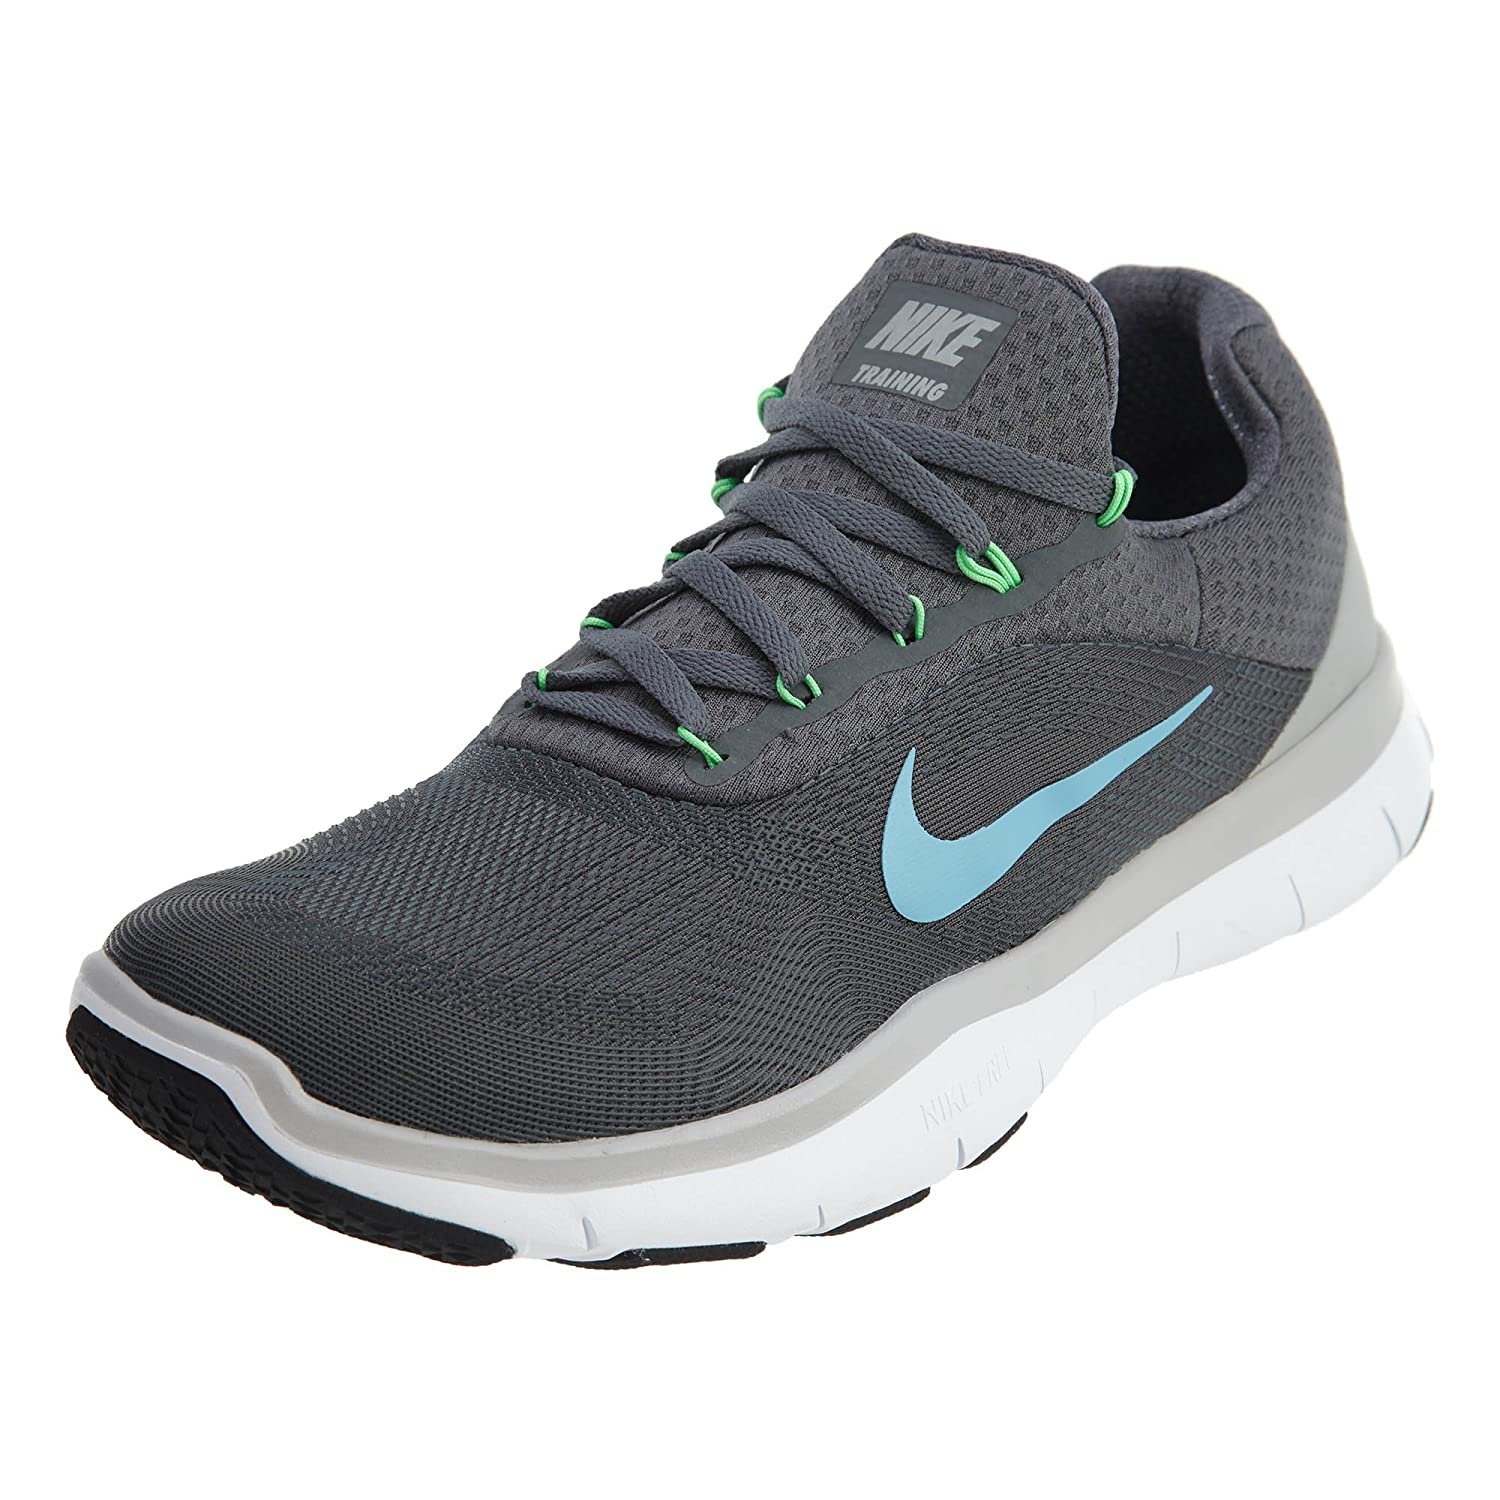 NIKE Free Trainer V7 Mens Style : 898053 006 Size : 11.5 M US